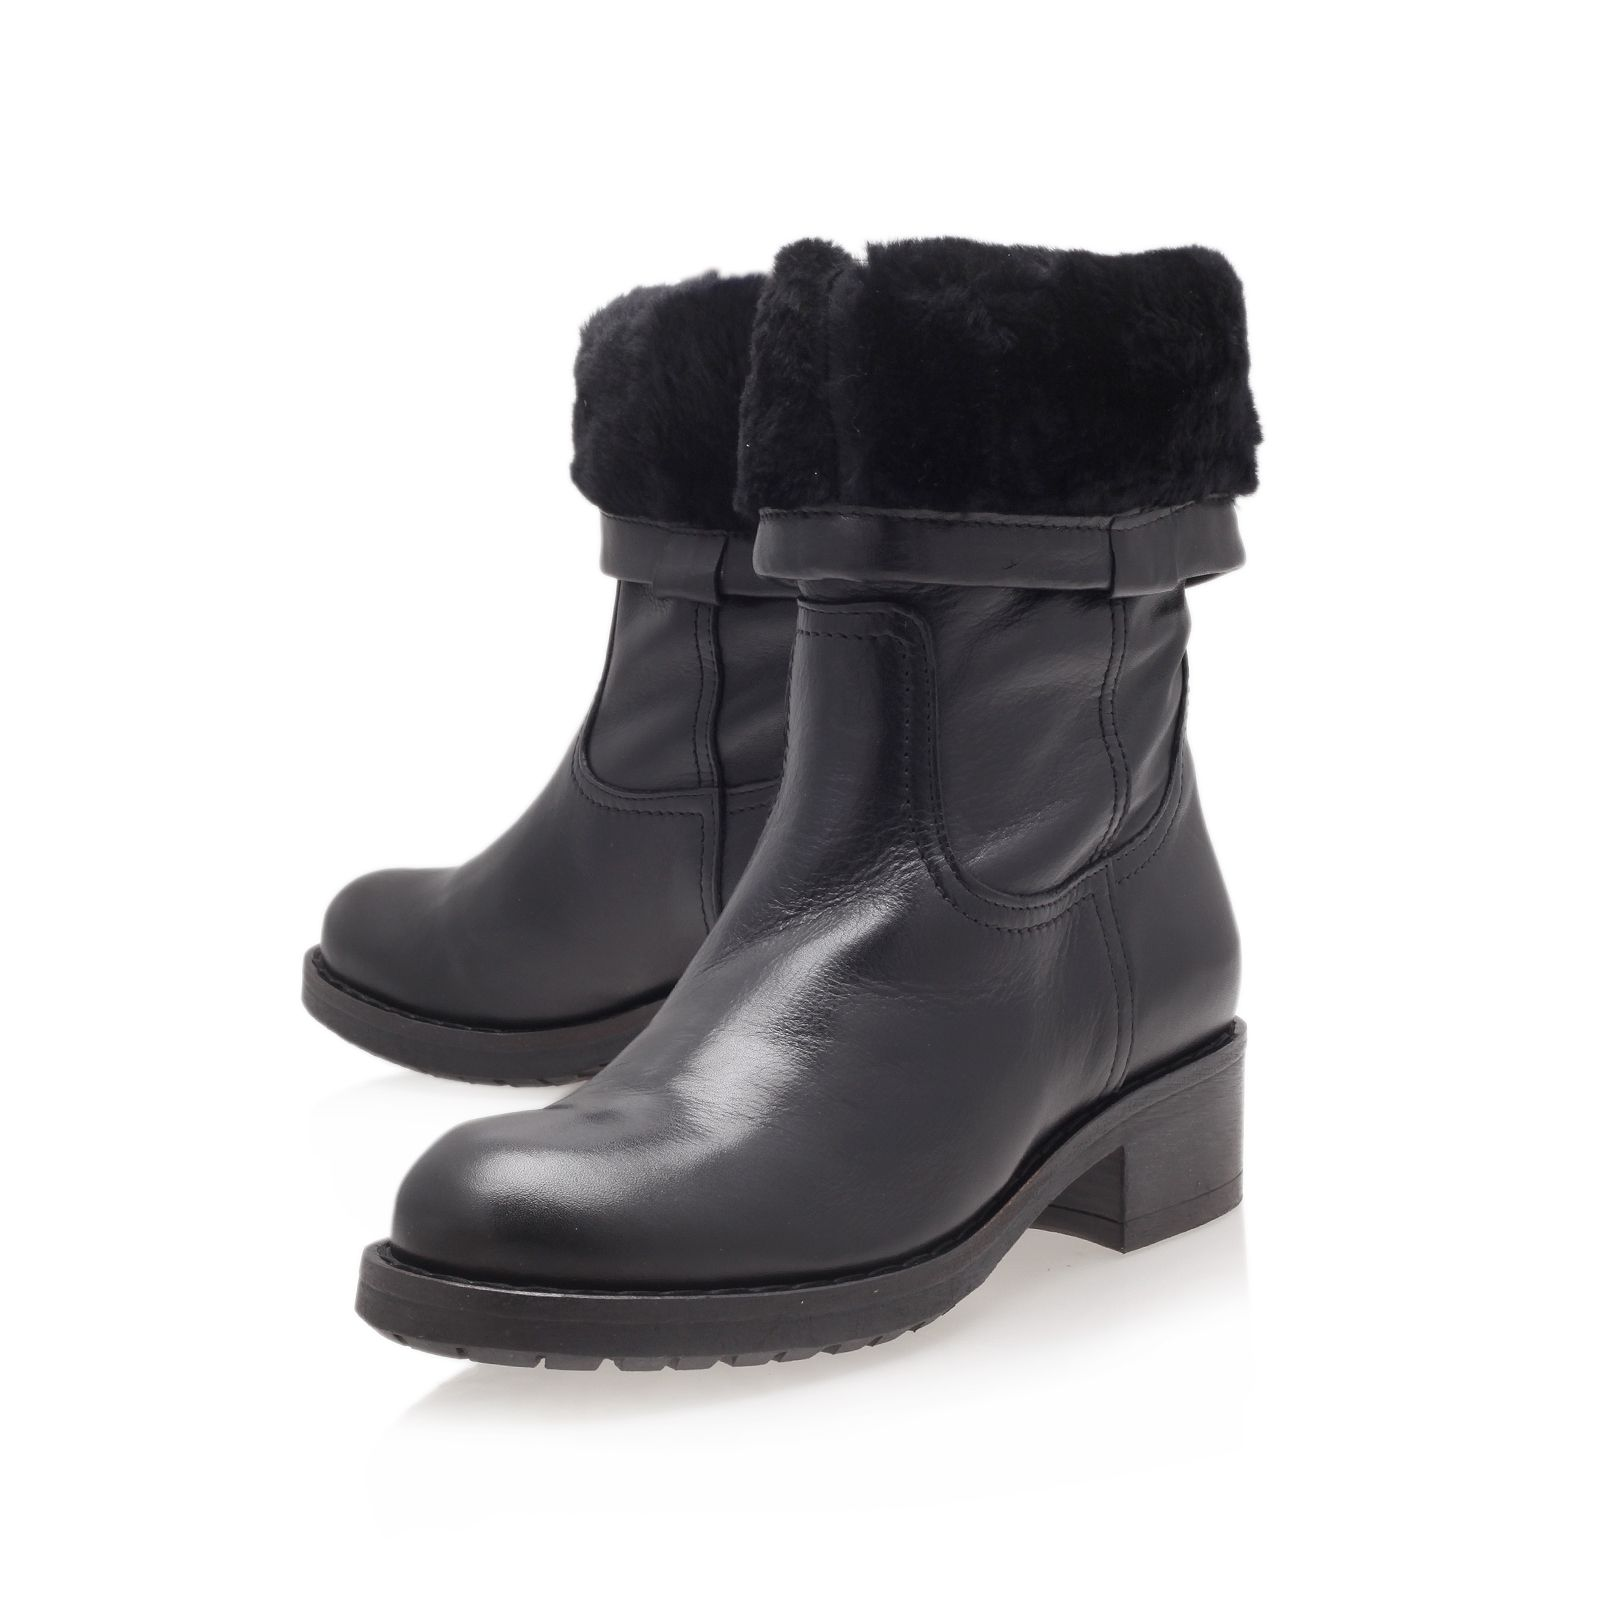 Wide low heel calf boots